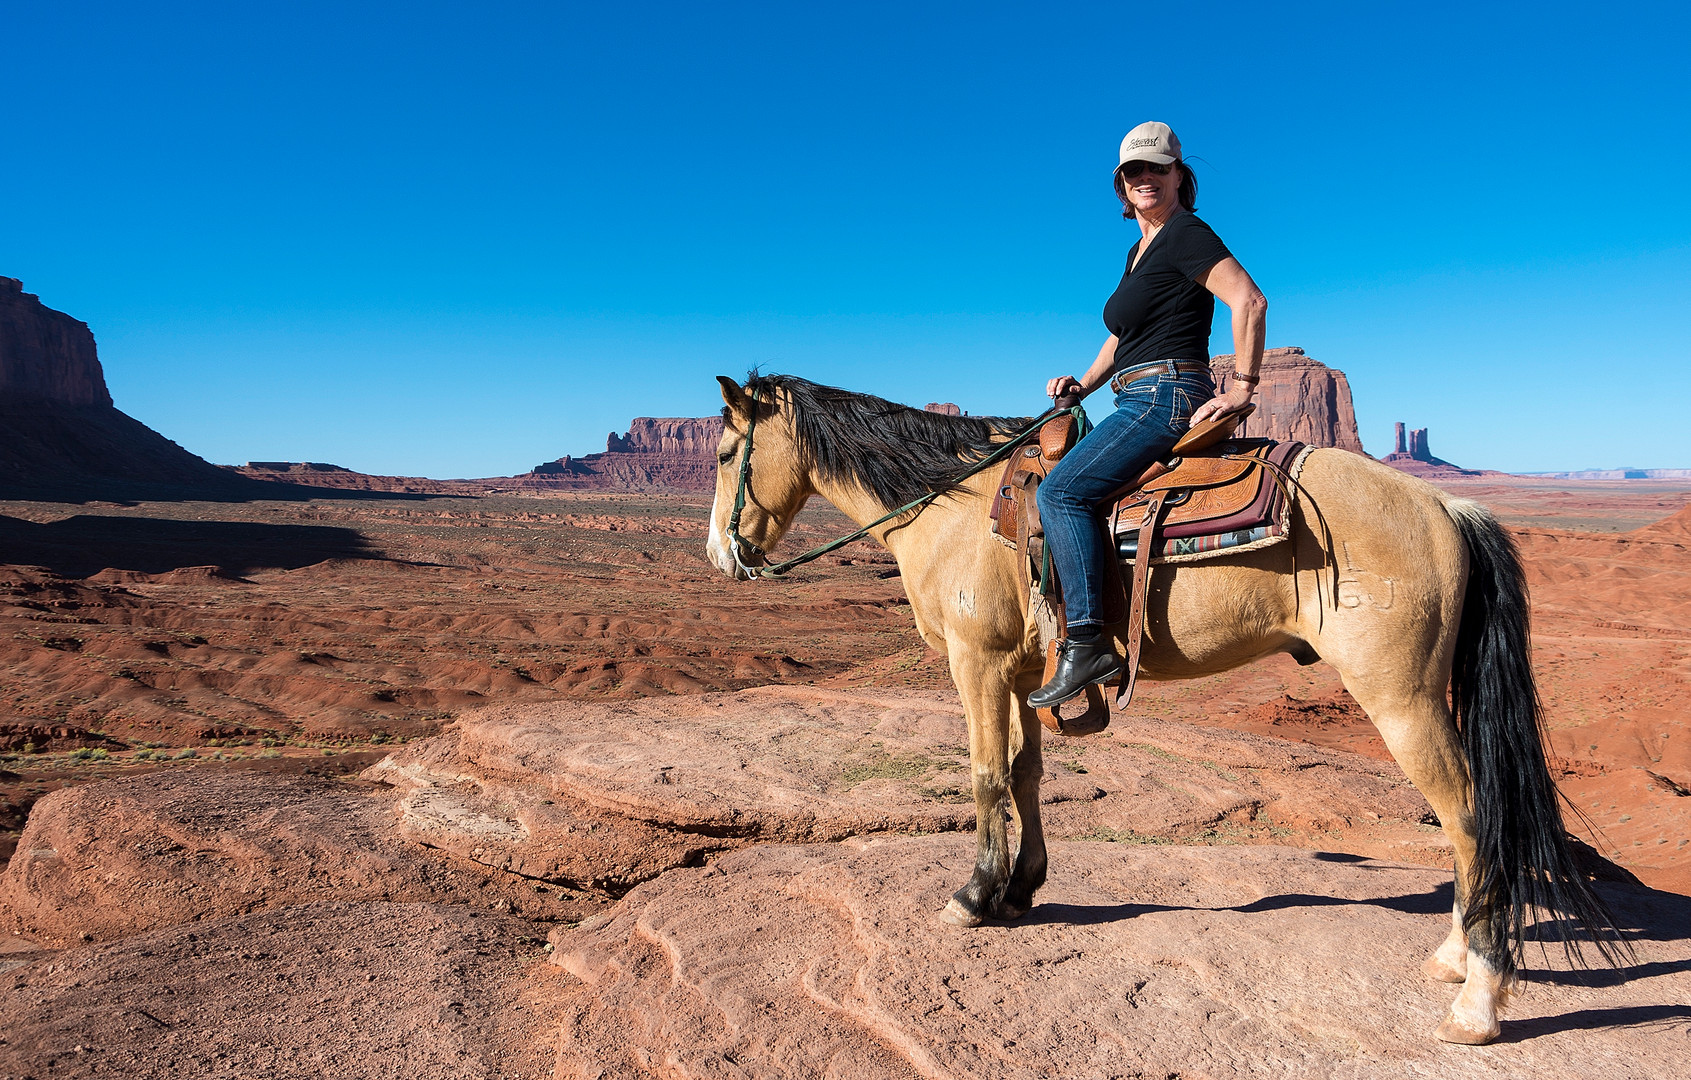 MARION ON HORSE IN MONUMENT VALLEY.jpg